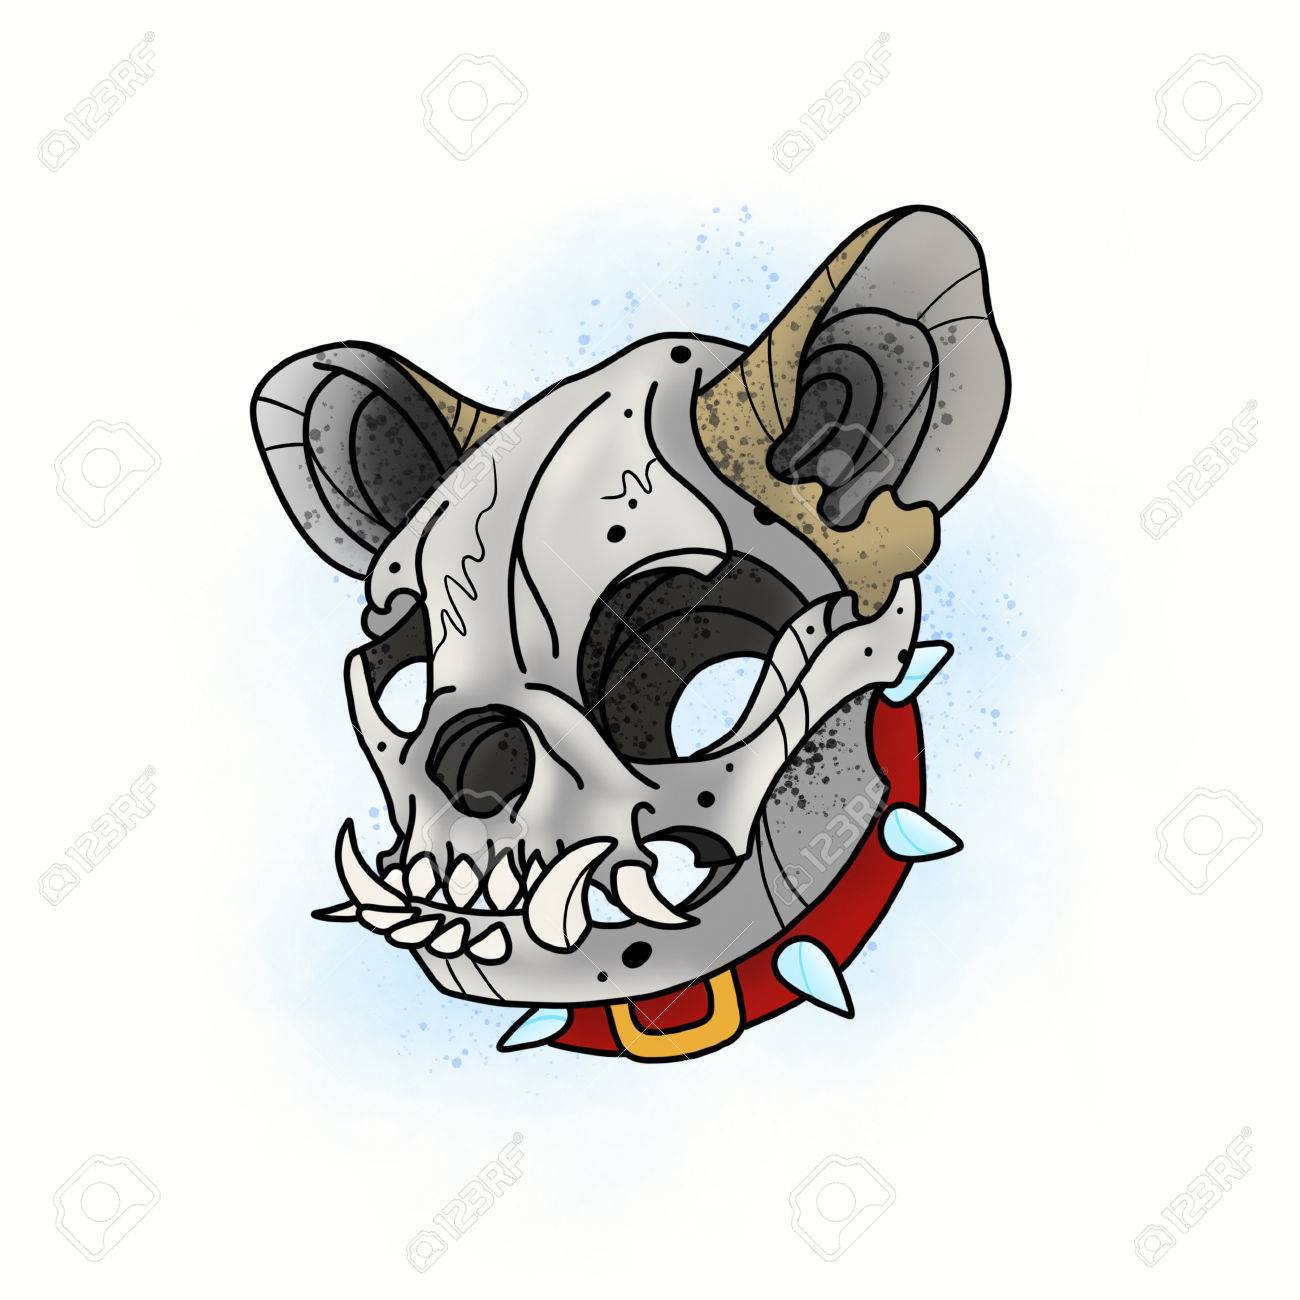 1300x1300 Dog Skull. Stylized Skeleton French Bulldog. Cartoon Illustration